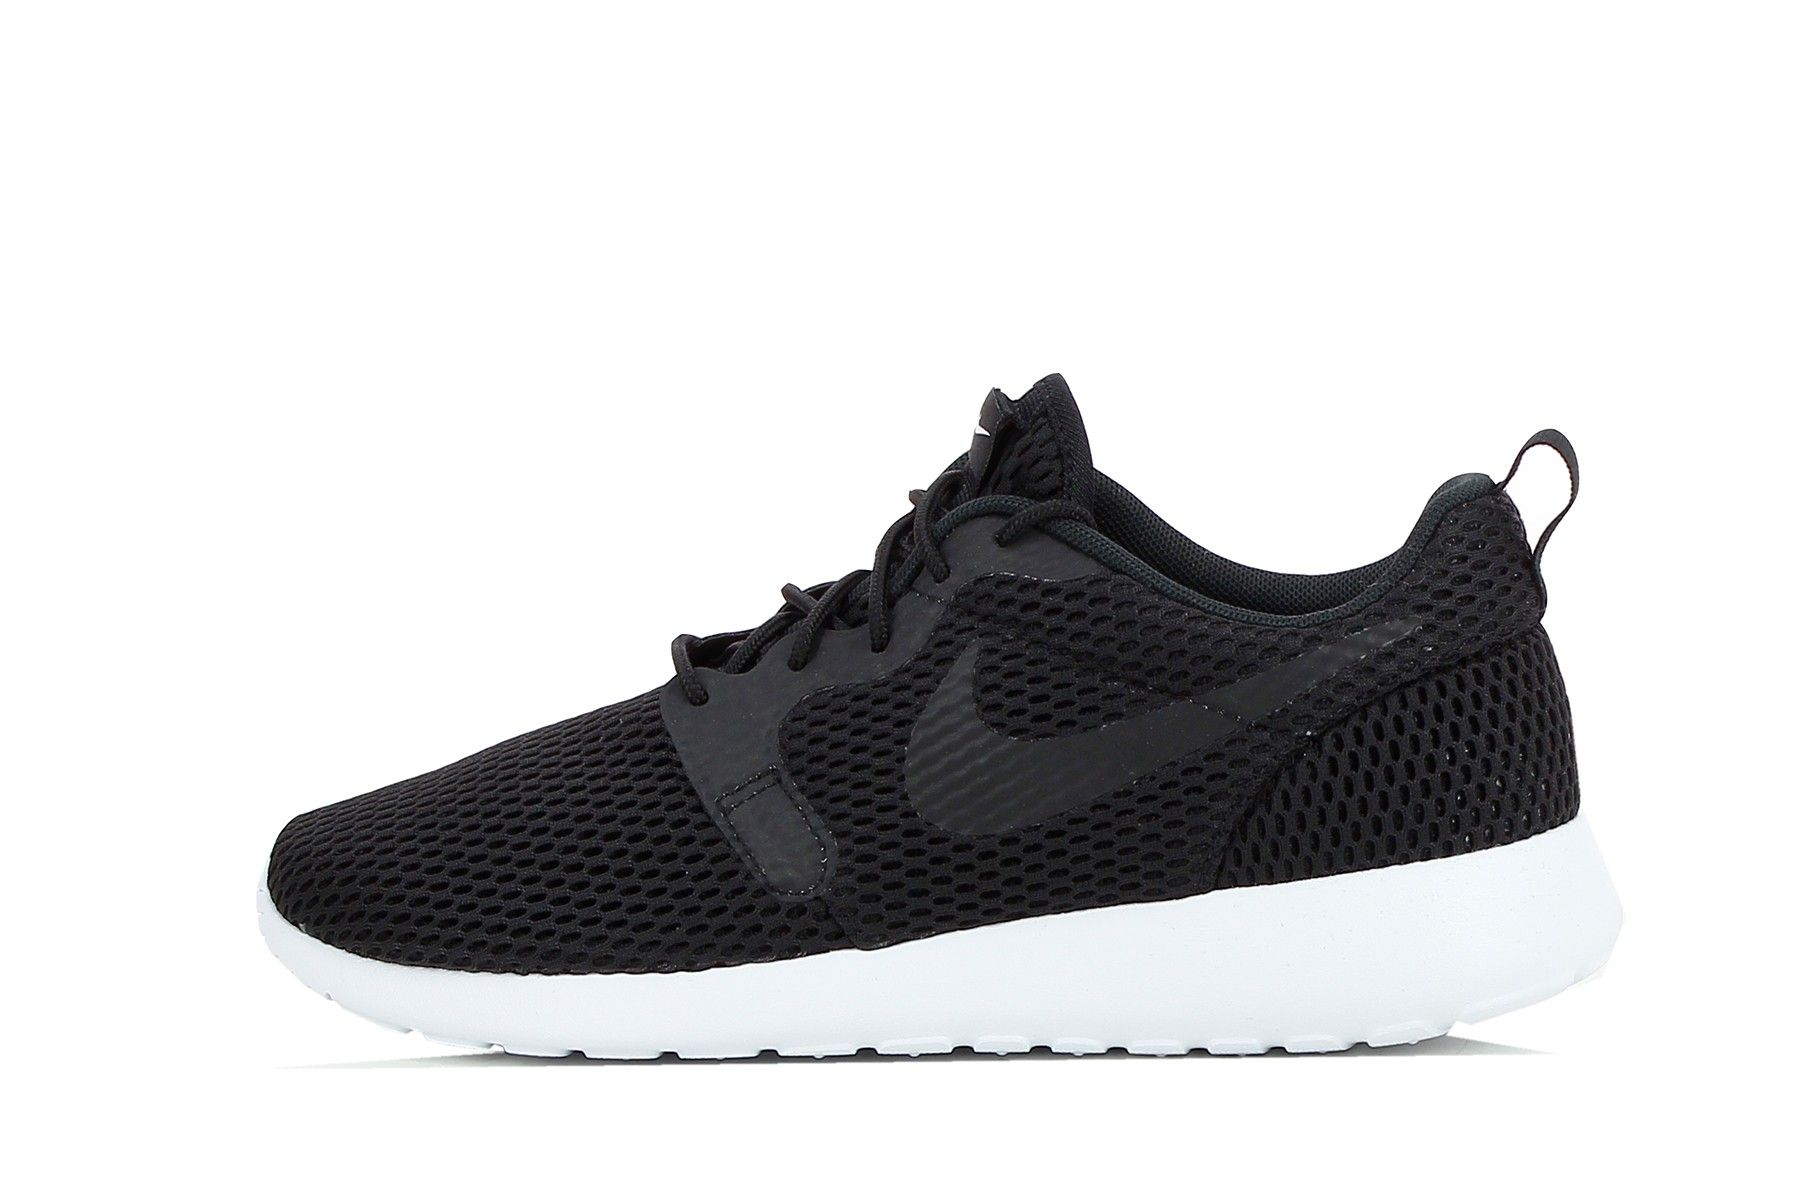 low priced cecdd bf615 Basket Nike Roshe One Hyper Breathe - 833125-001 - Pegashoes